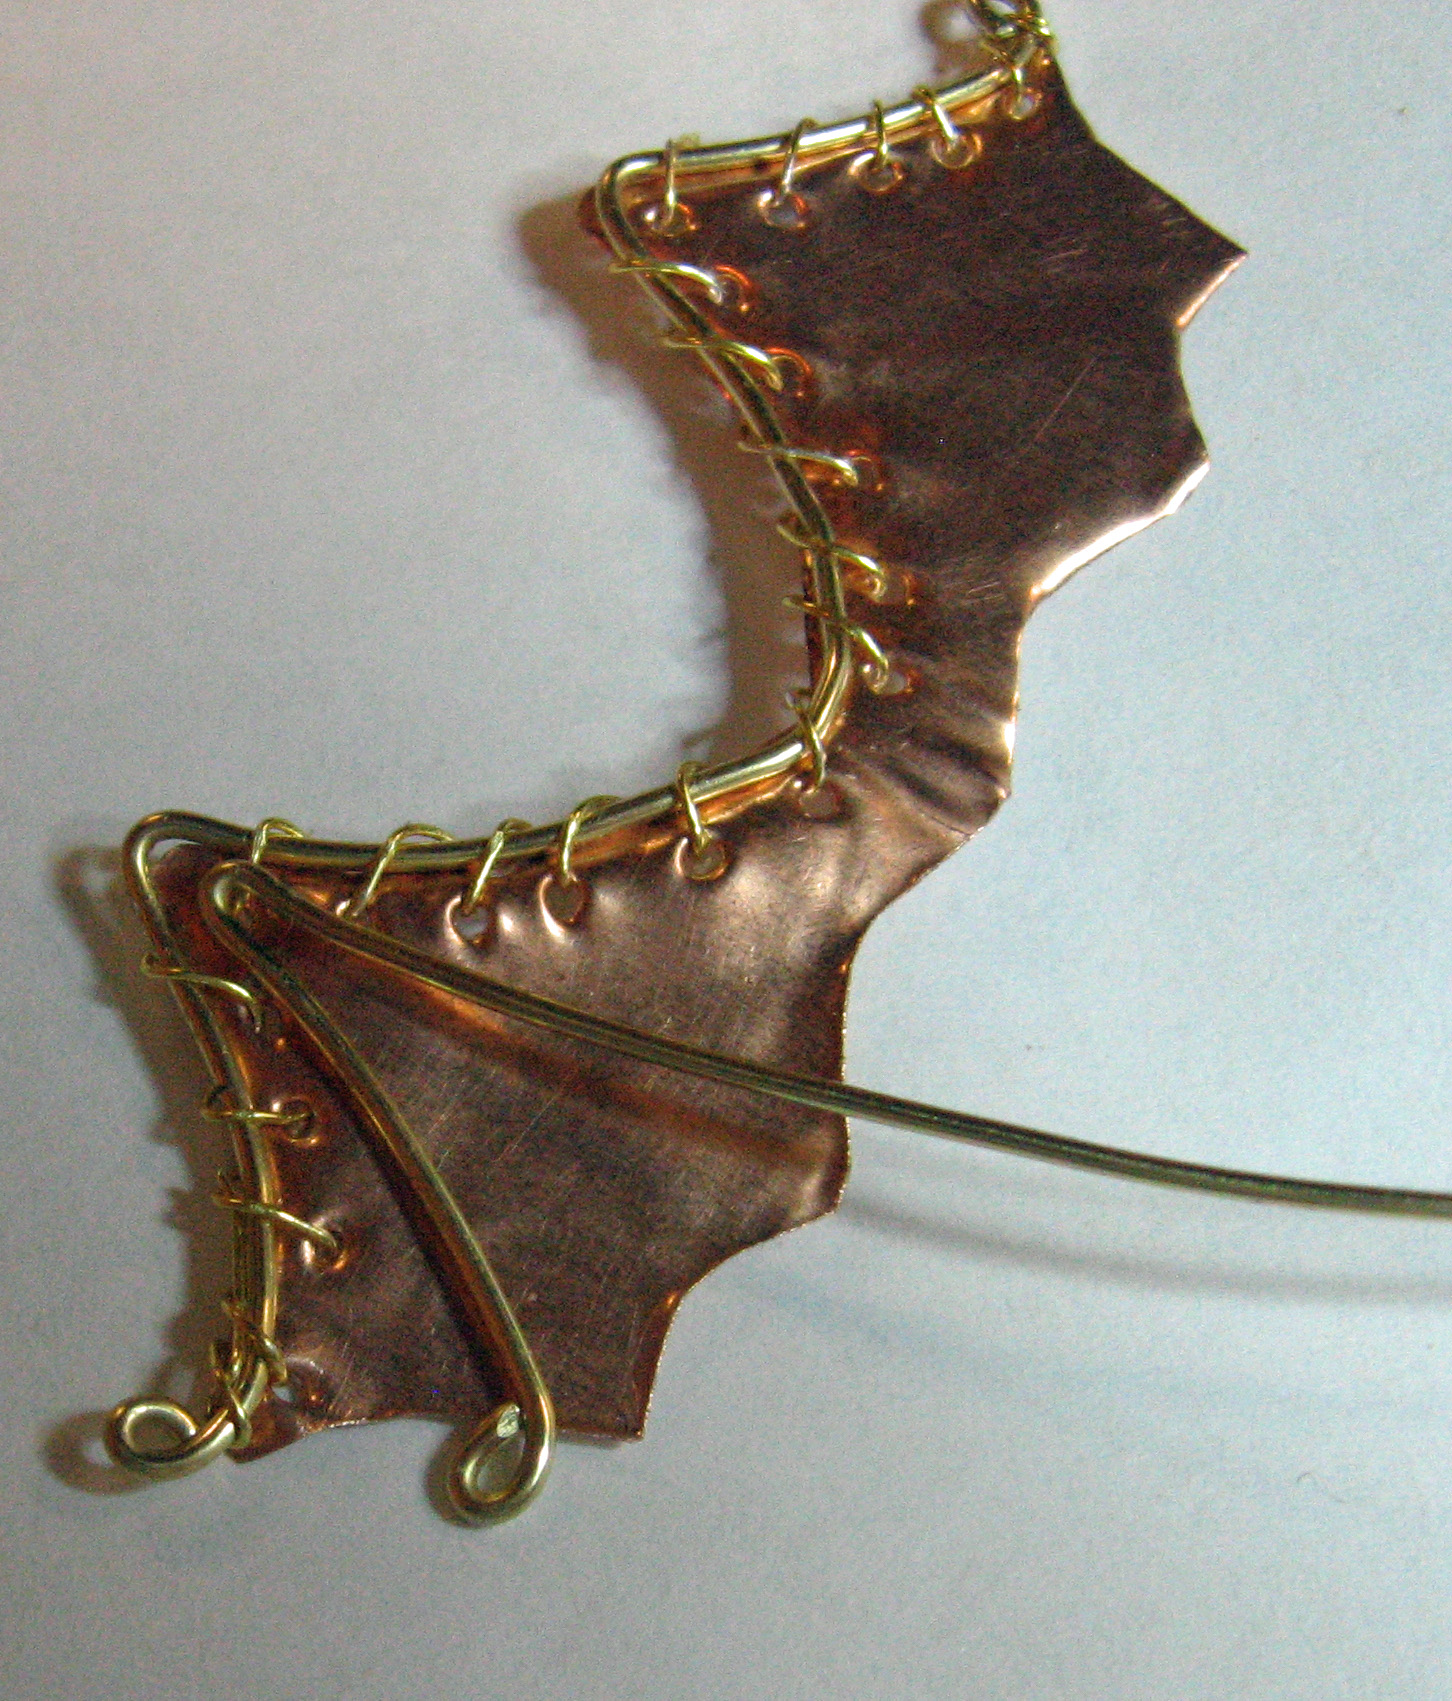 Picture of Attach Wing Ribs With Fine Wire